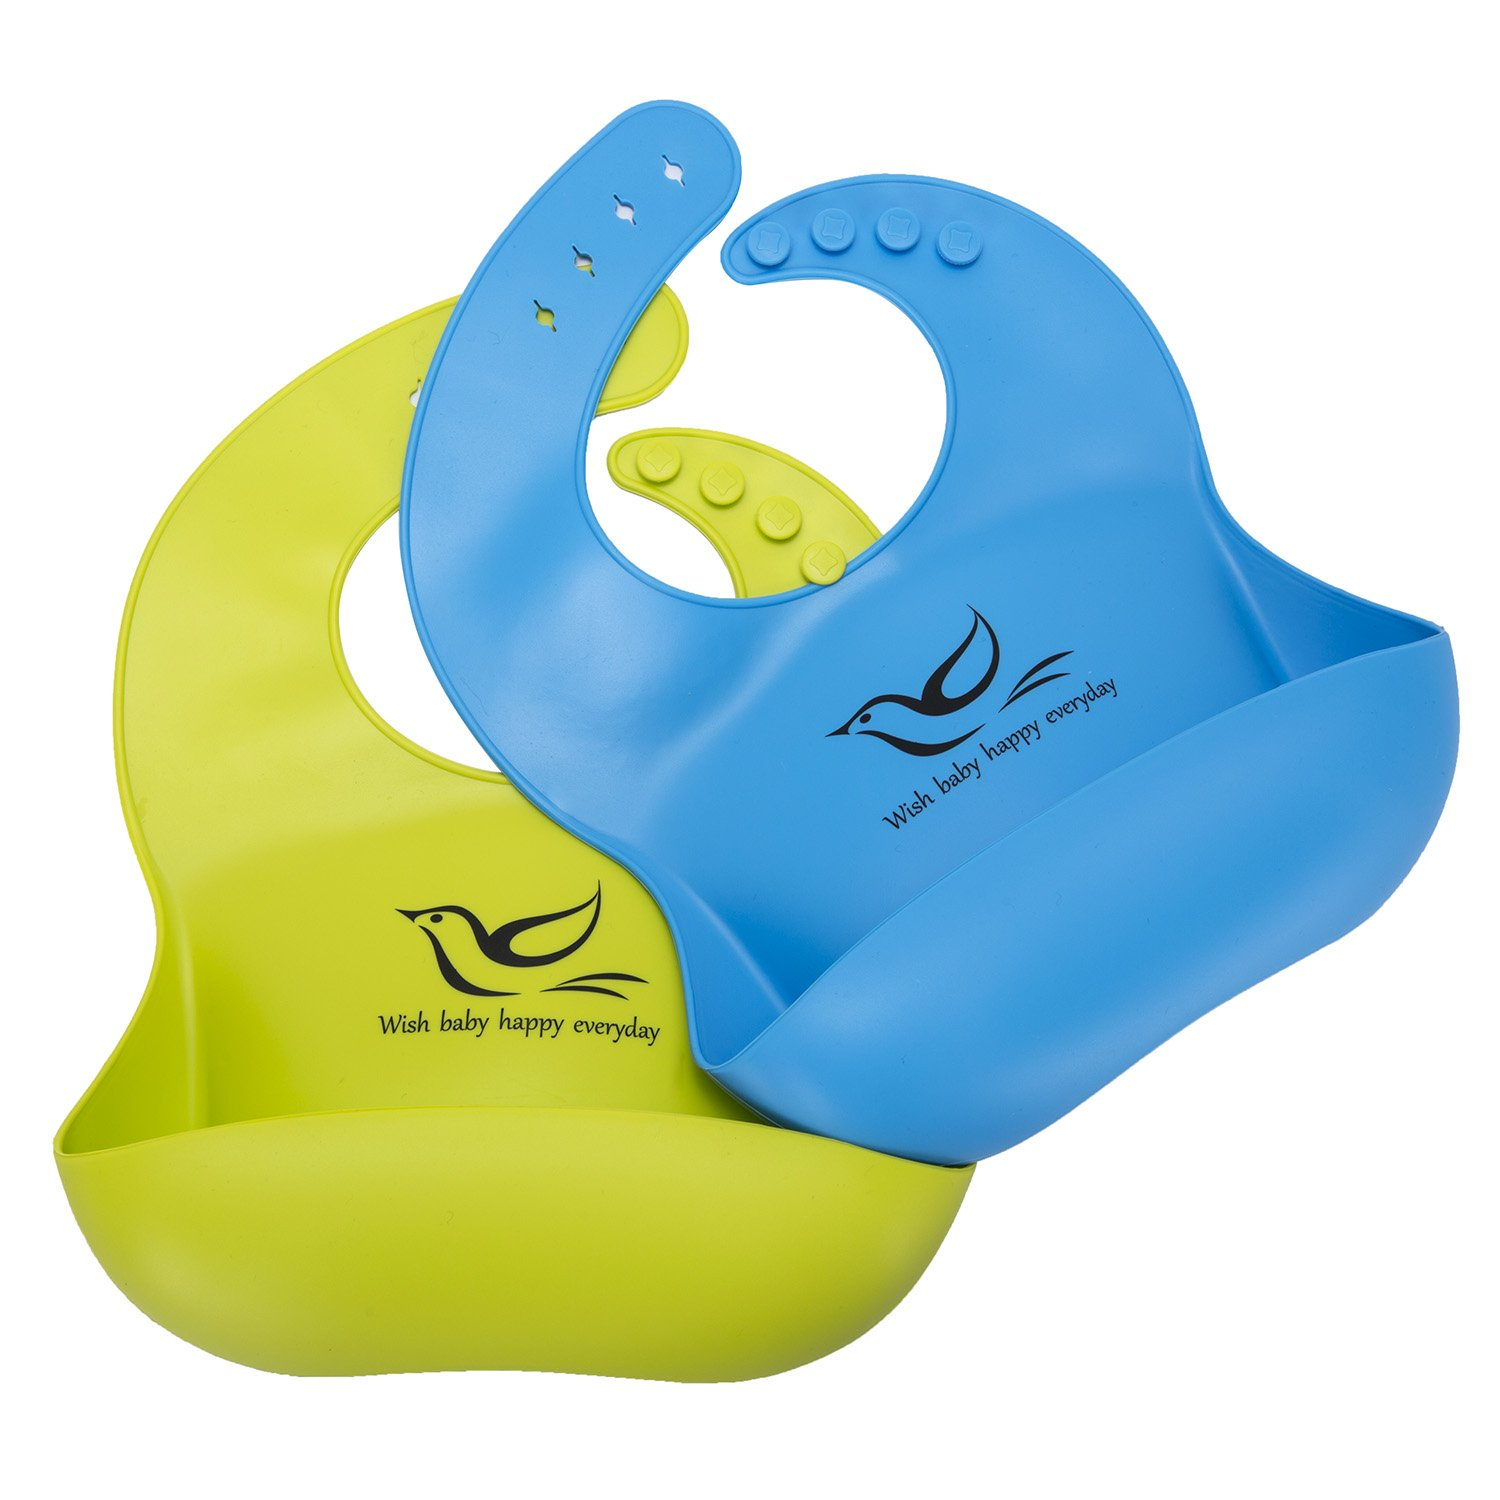 Dreamslink Dreamslink Silicone Baby Bib Comfortable for Babies and Toddlers, Blue Green, Blue Green